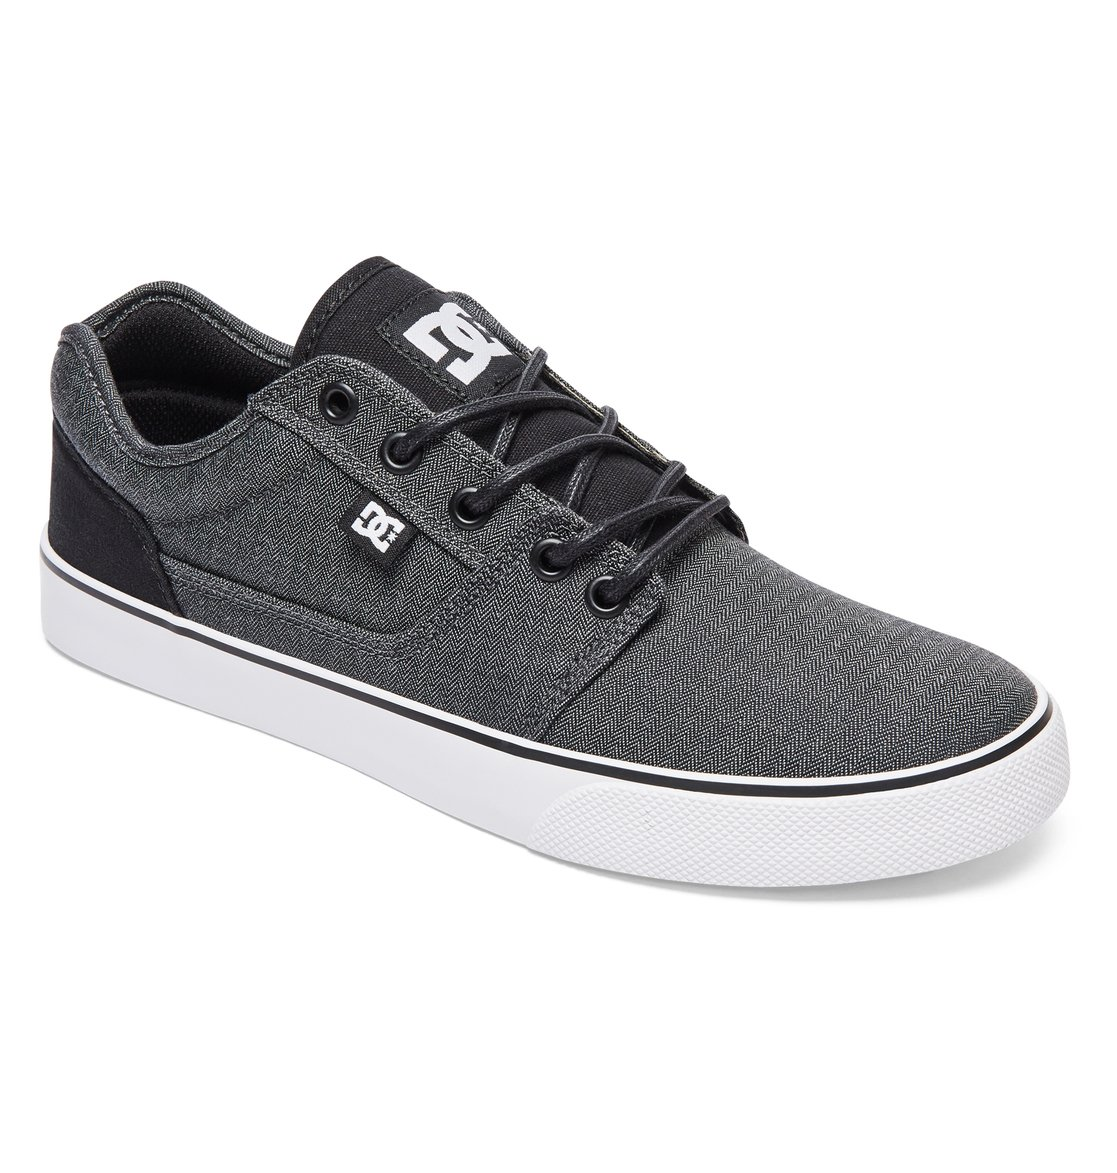 Tonik TX SE Sneakers grey / white DC 47vb2sR5V6